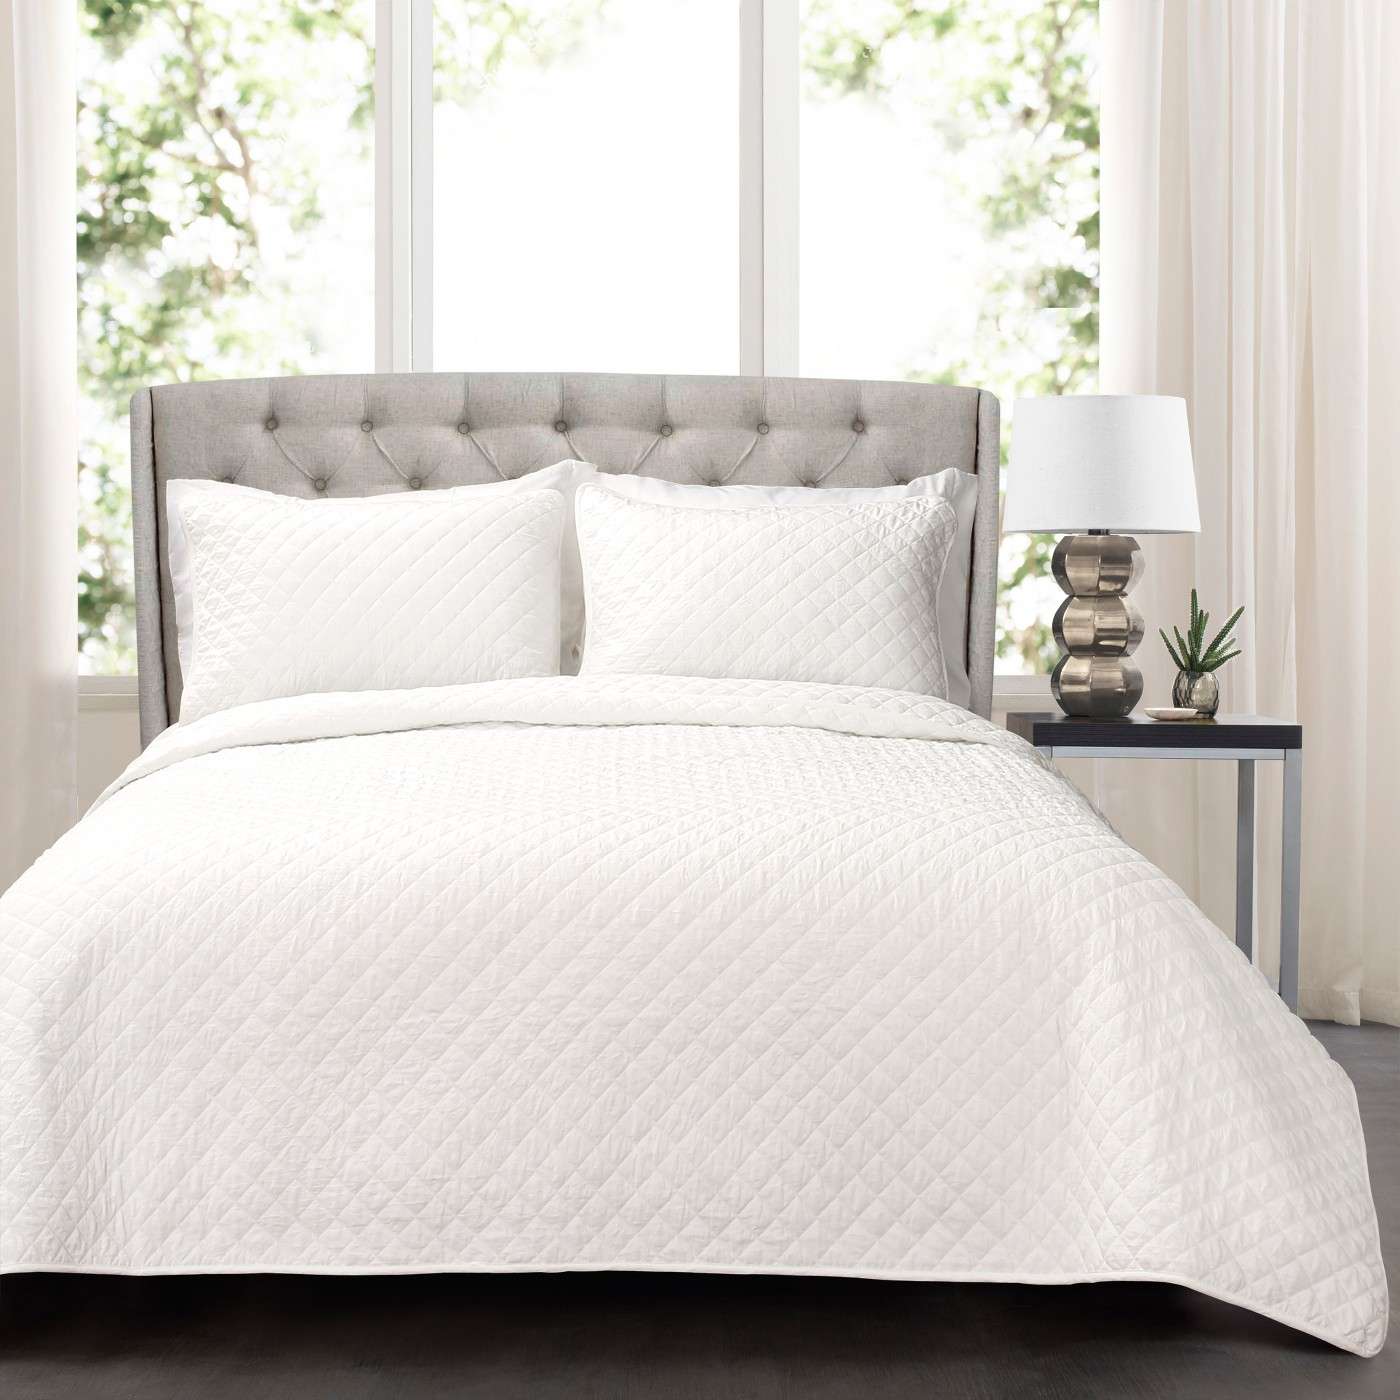 Ava Diamond Oversized Cotton Quilt Set - Lush Decor - image 1 of 4